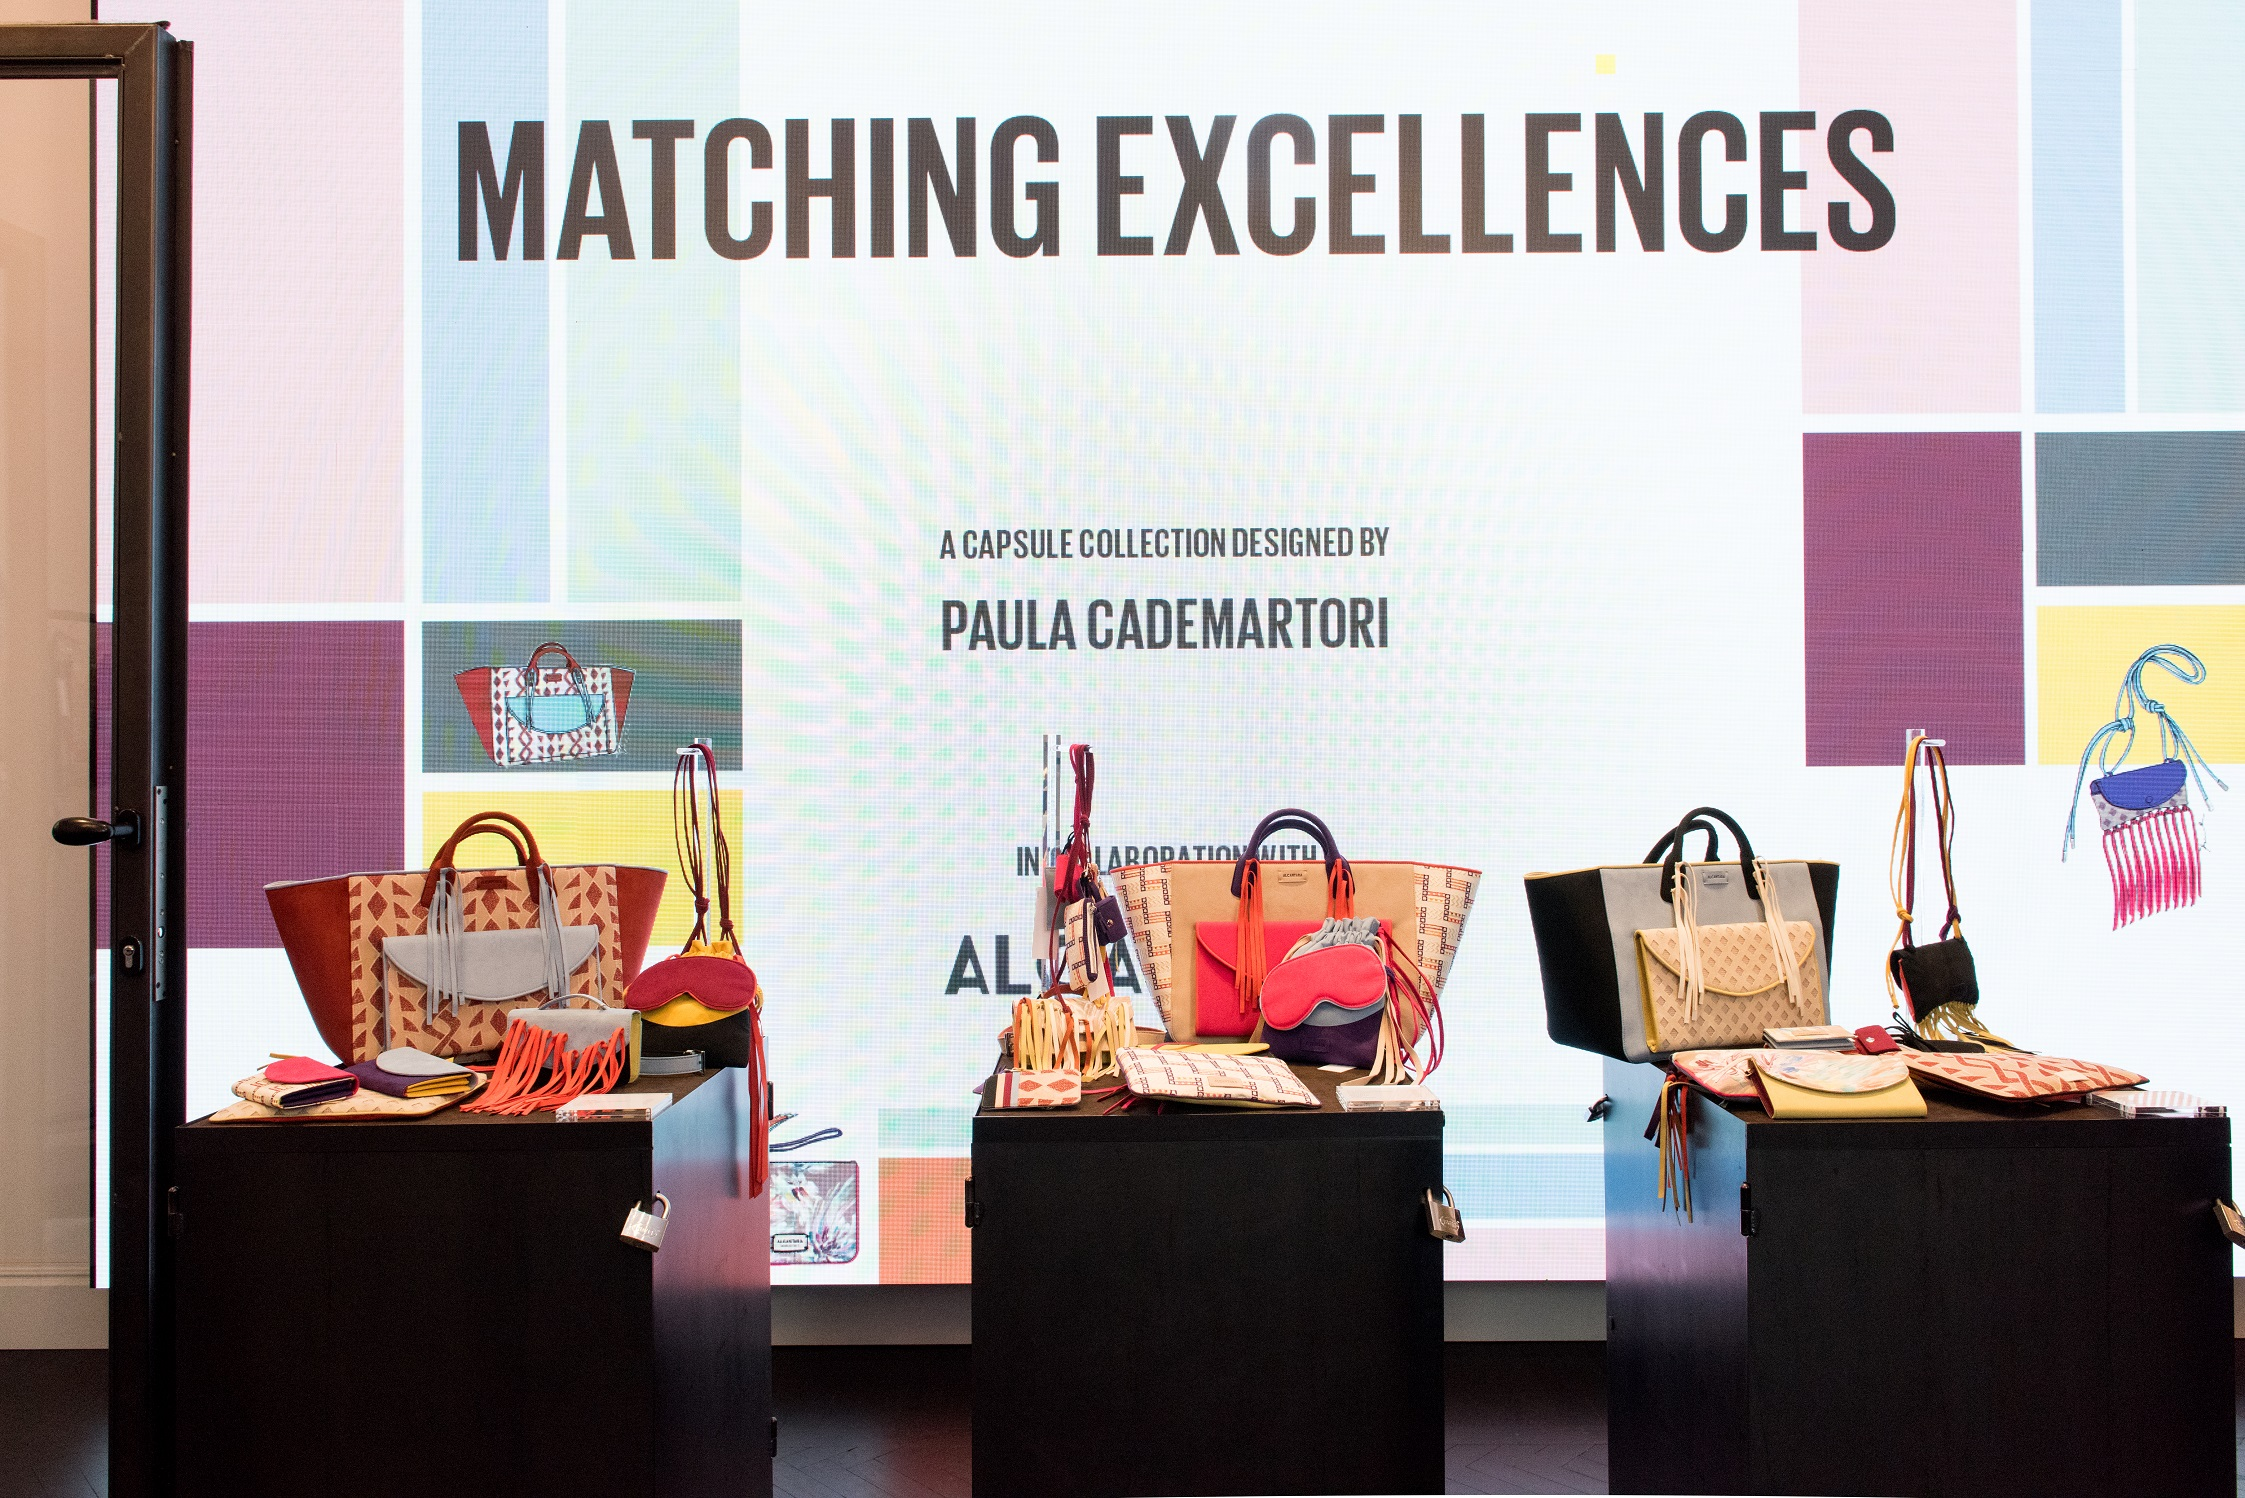 MATCHING EXCELLENCES SPECIAL CAPSULE COLLECTION CON PAULA CADEMARTORI